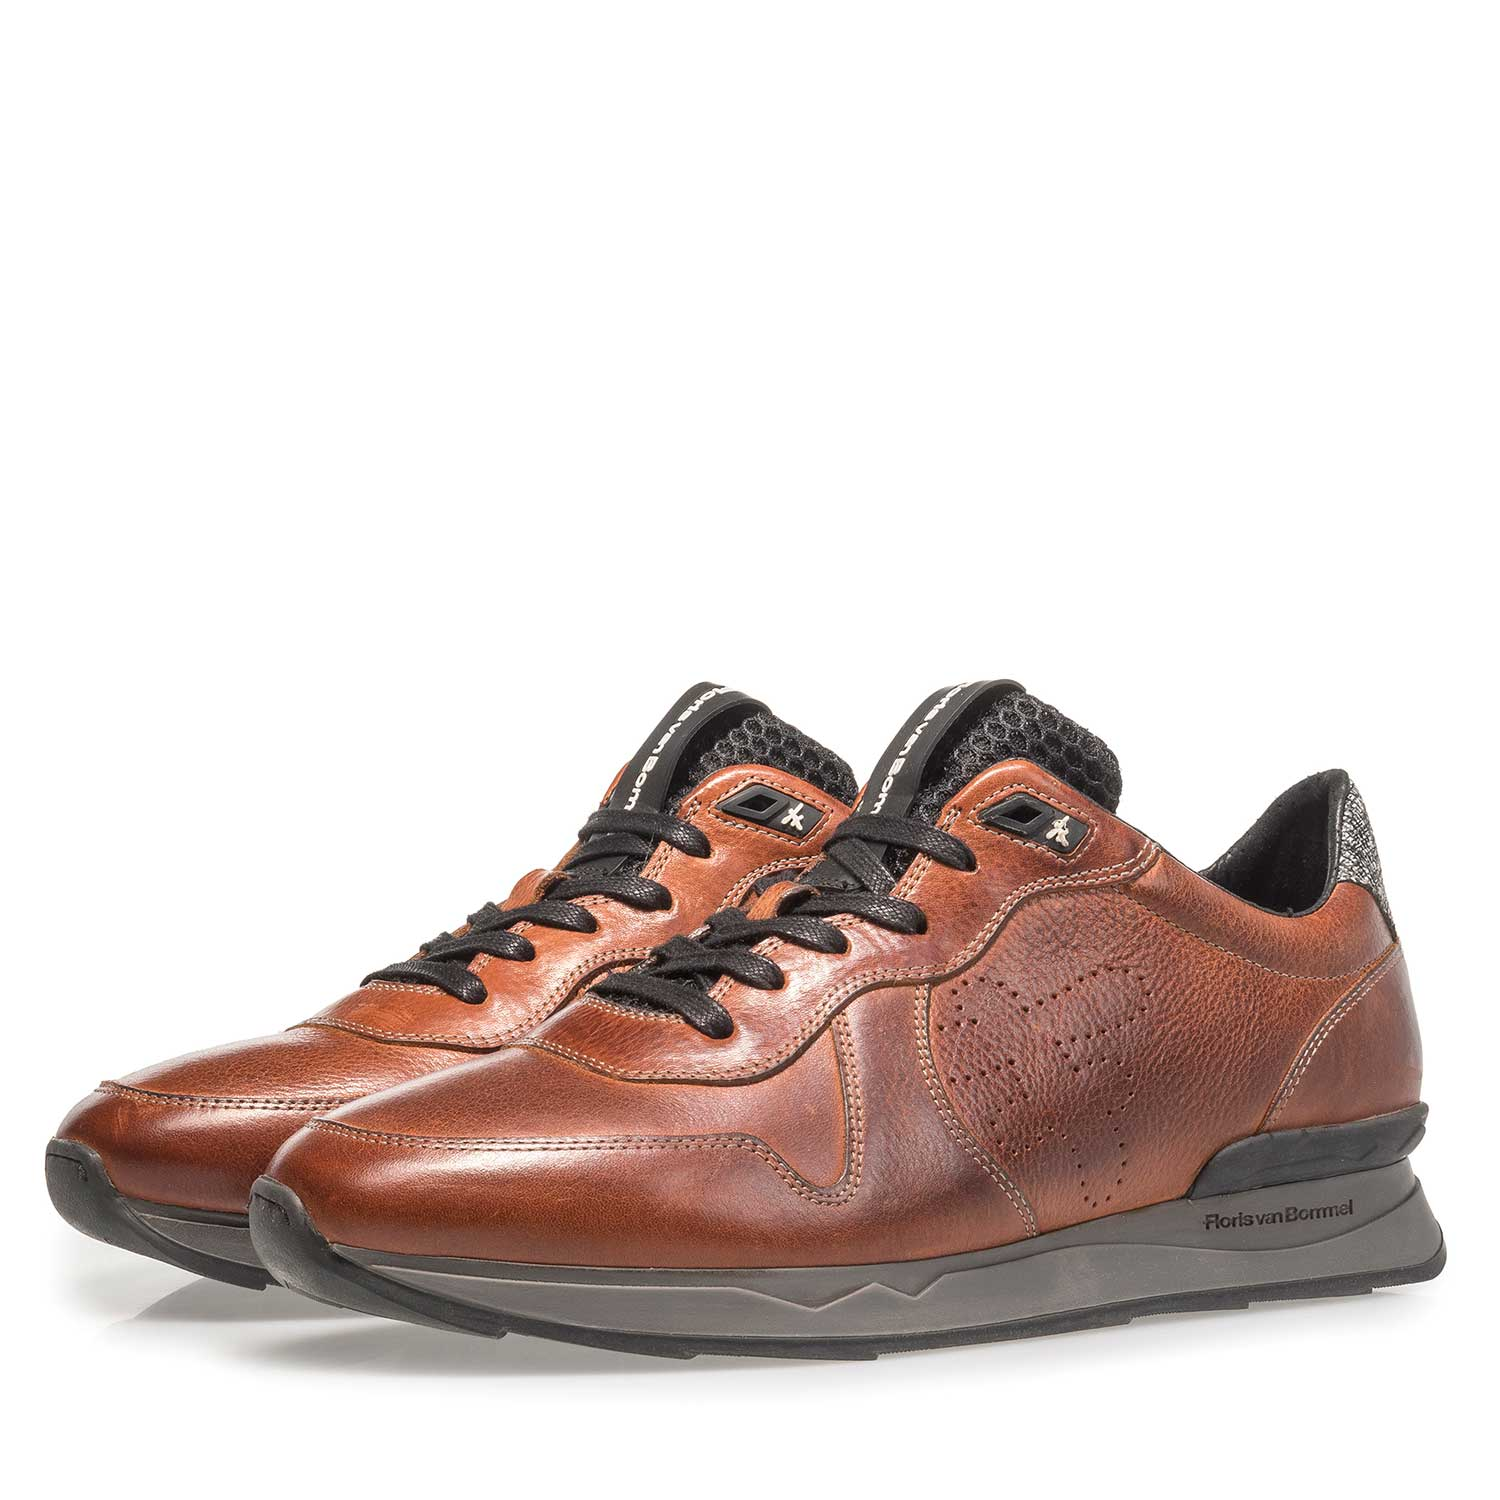 16277/05 - Cognac-coloured calf leather sneaker